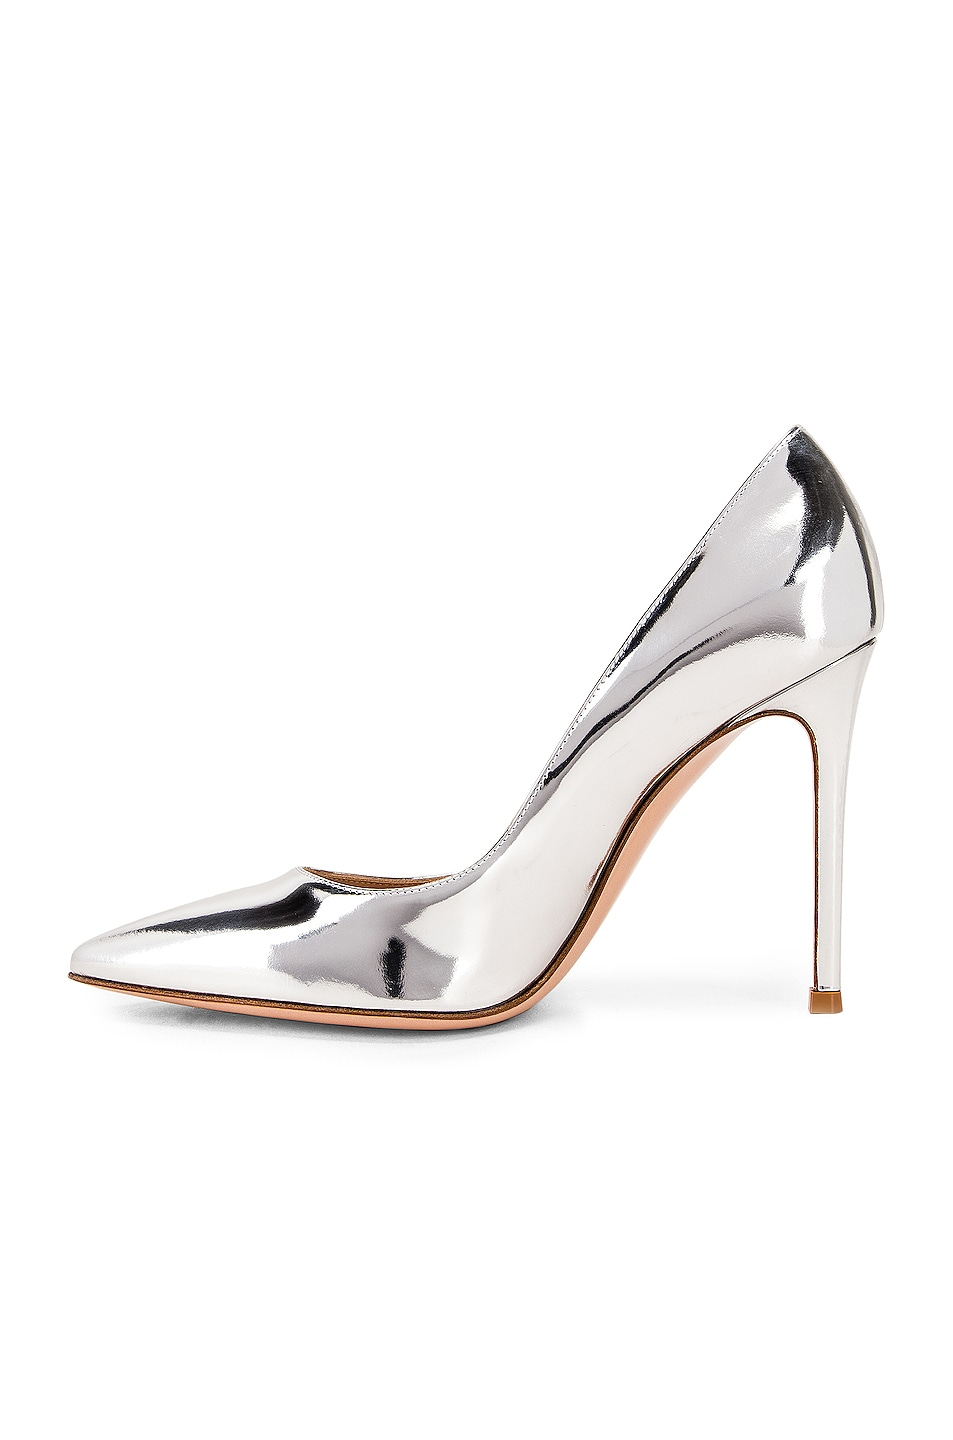 Image 5 of Gianvito Rossi Metal GIanvito Heels in Silver